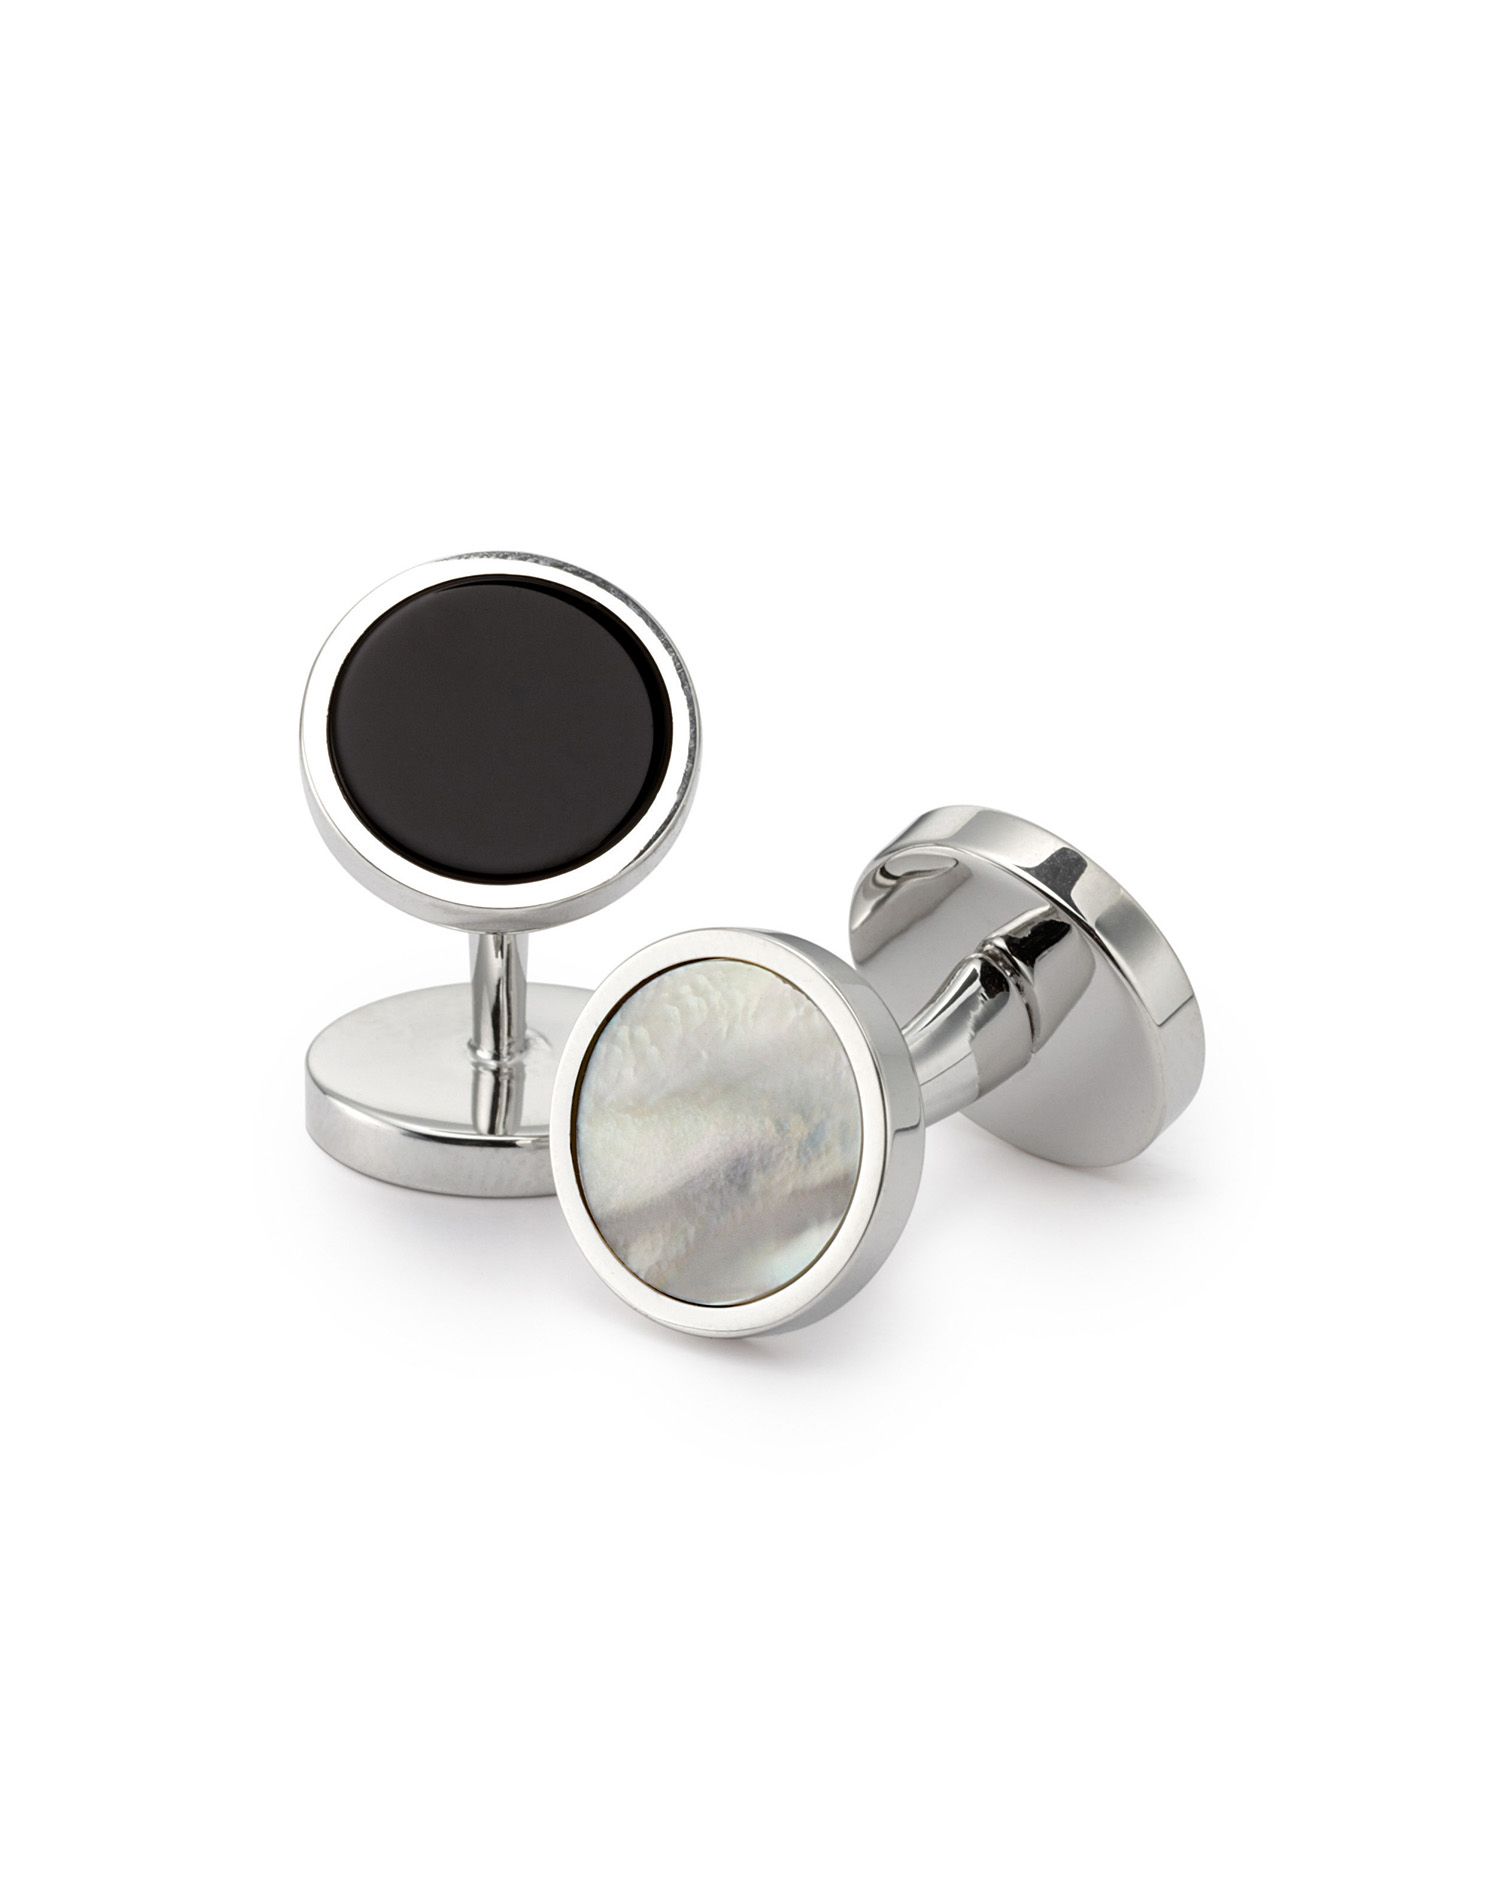 Mother-Of-Pearl and Onyx Evening Cufflinks by Charles Tyrwhitt